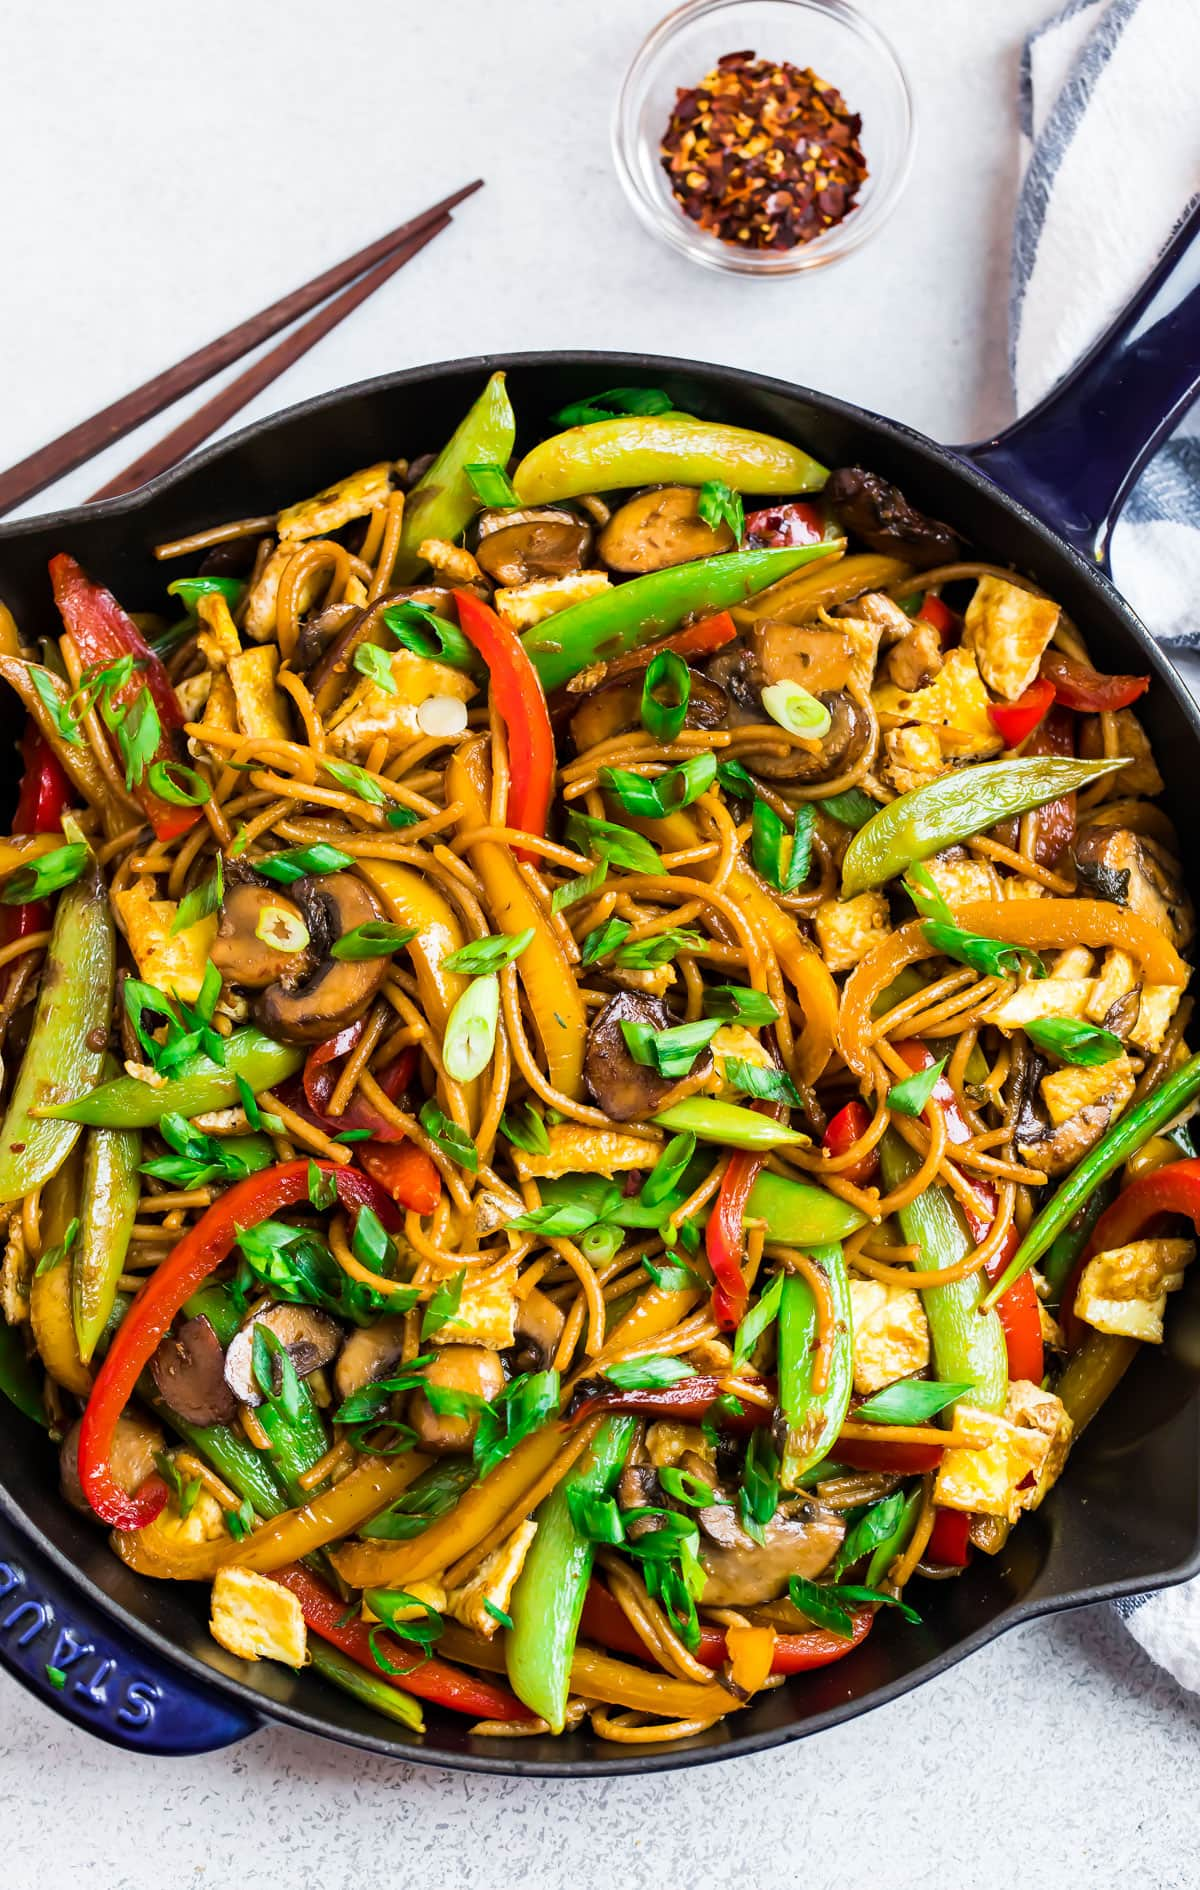 A skillet of vegetable lo mein